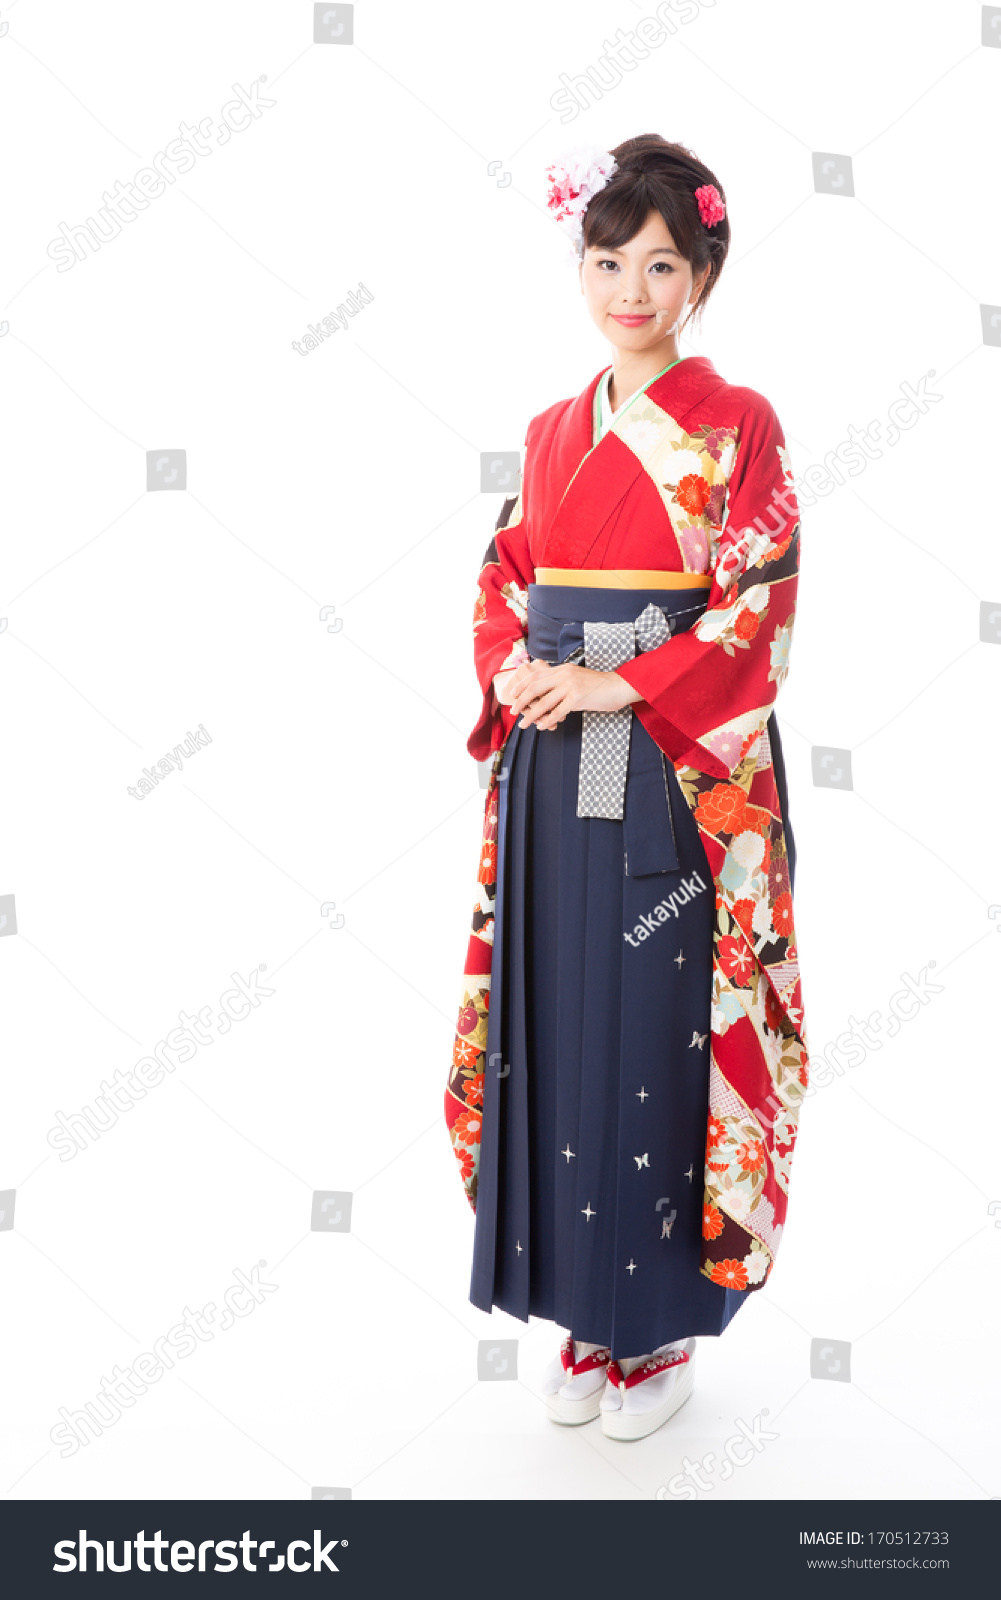 japanese girl wearing kimono - photo #30